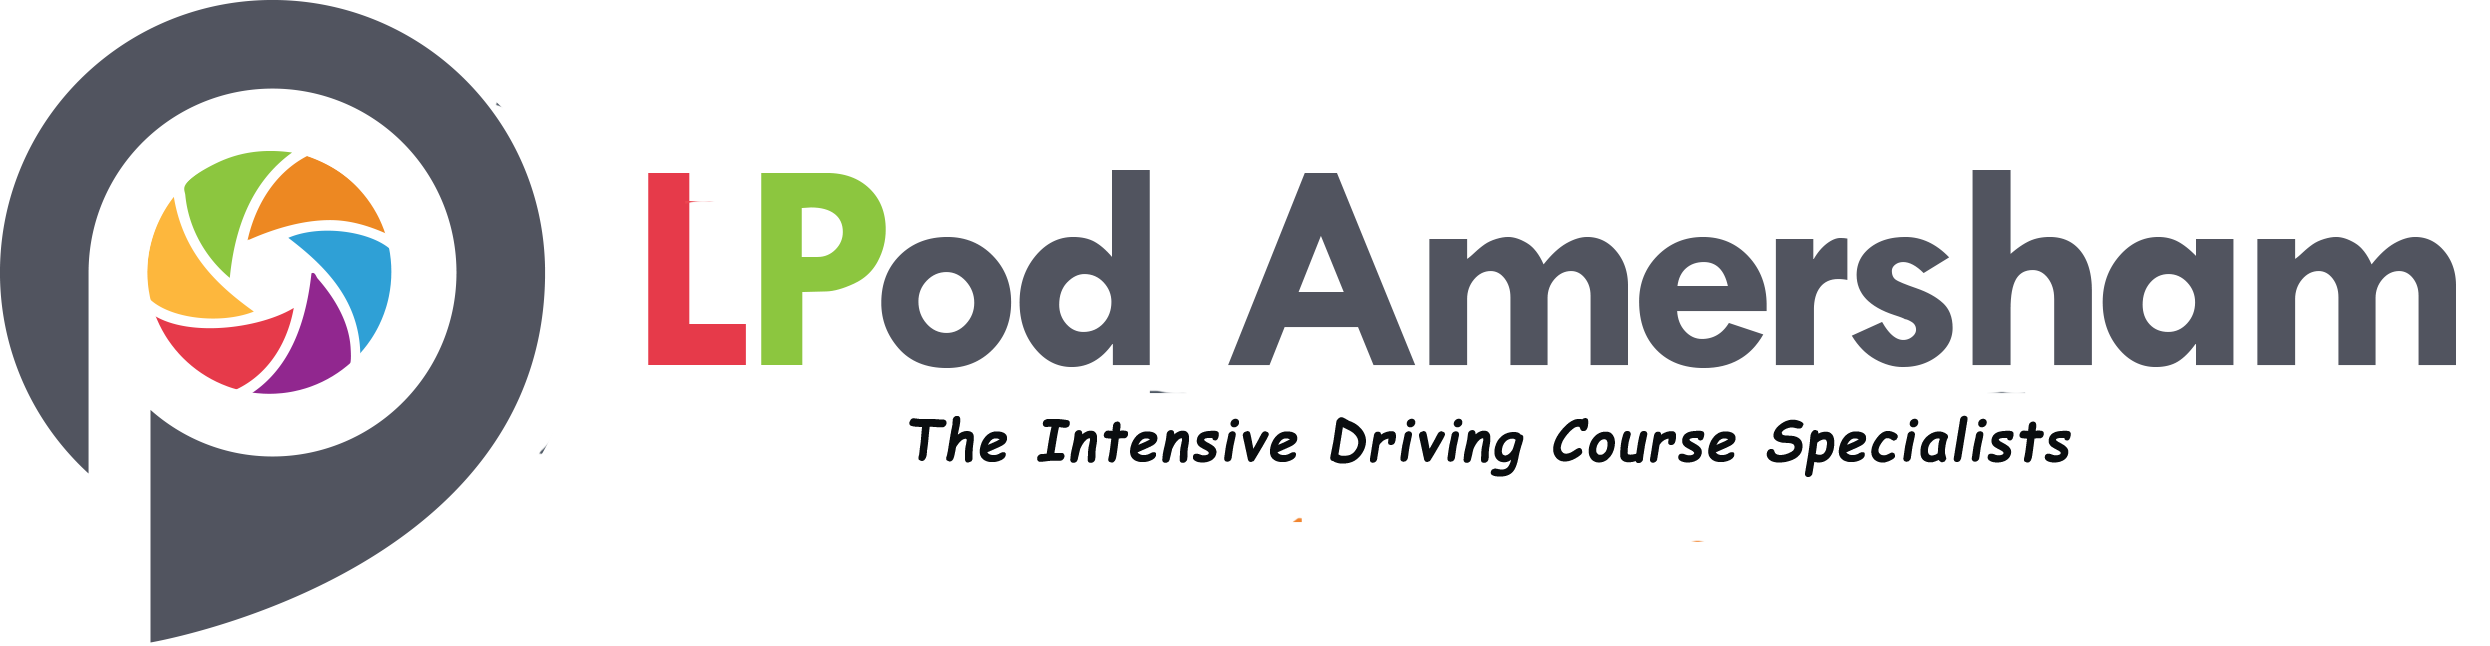 intensive driving courses amersham, intensive driving school amersham, iintensive driving lessons amersham